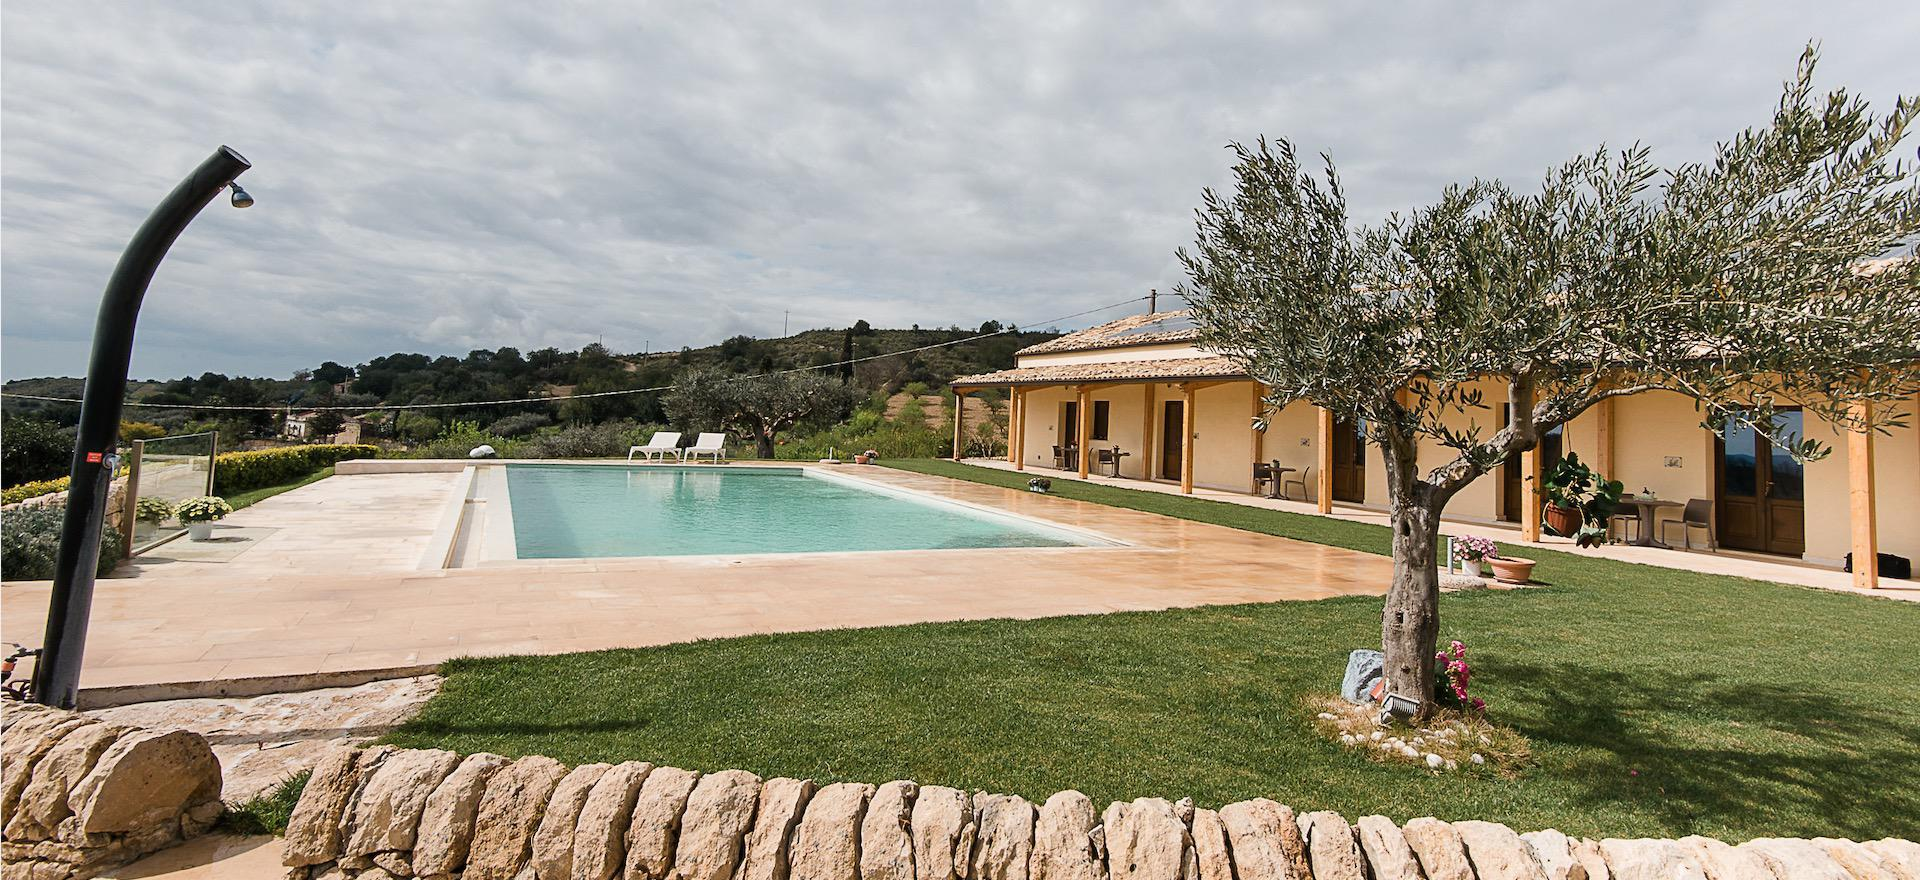 Agriturismo Sicily Small and cozy agriturismo hidden among almond and olive trees